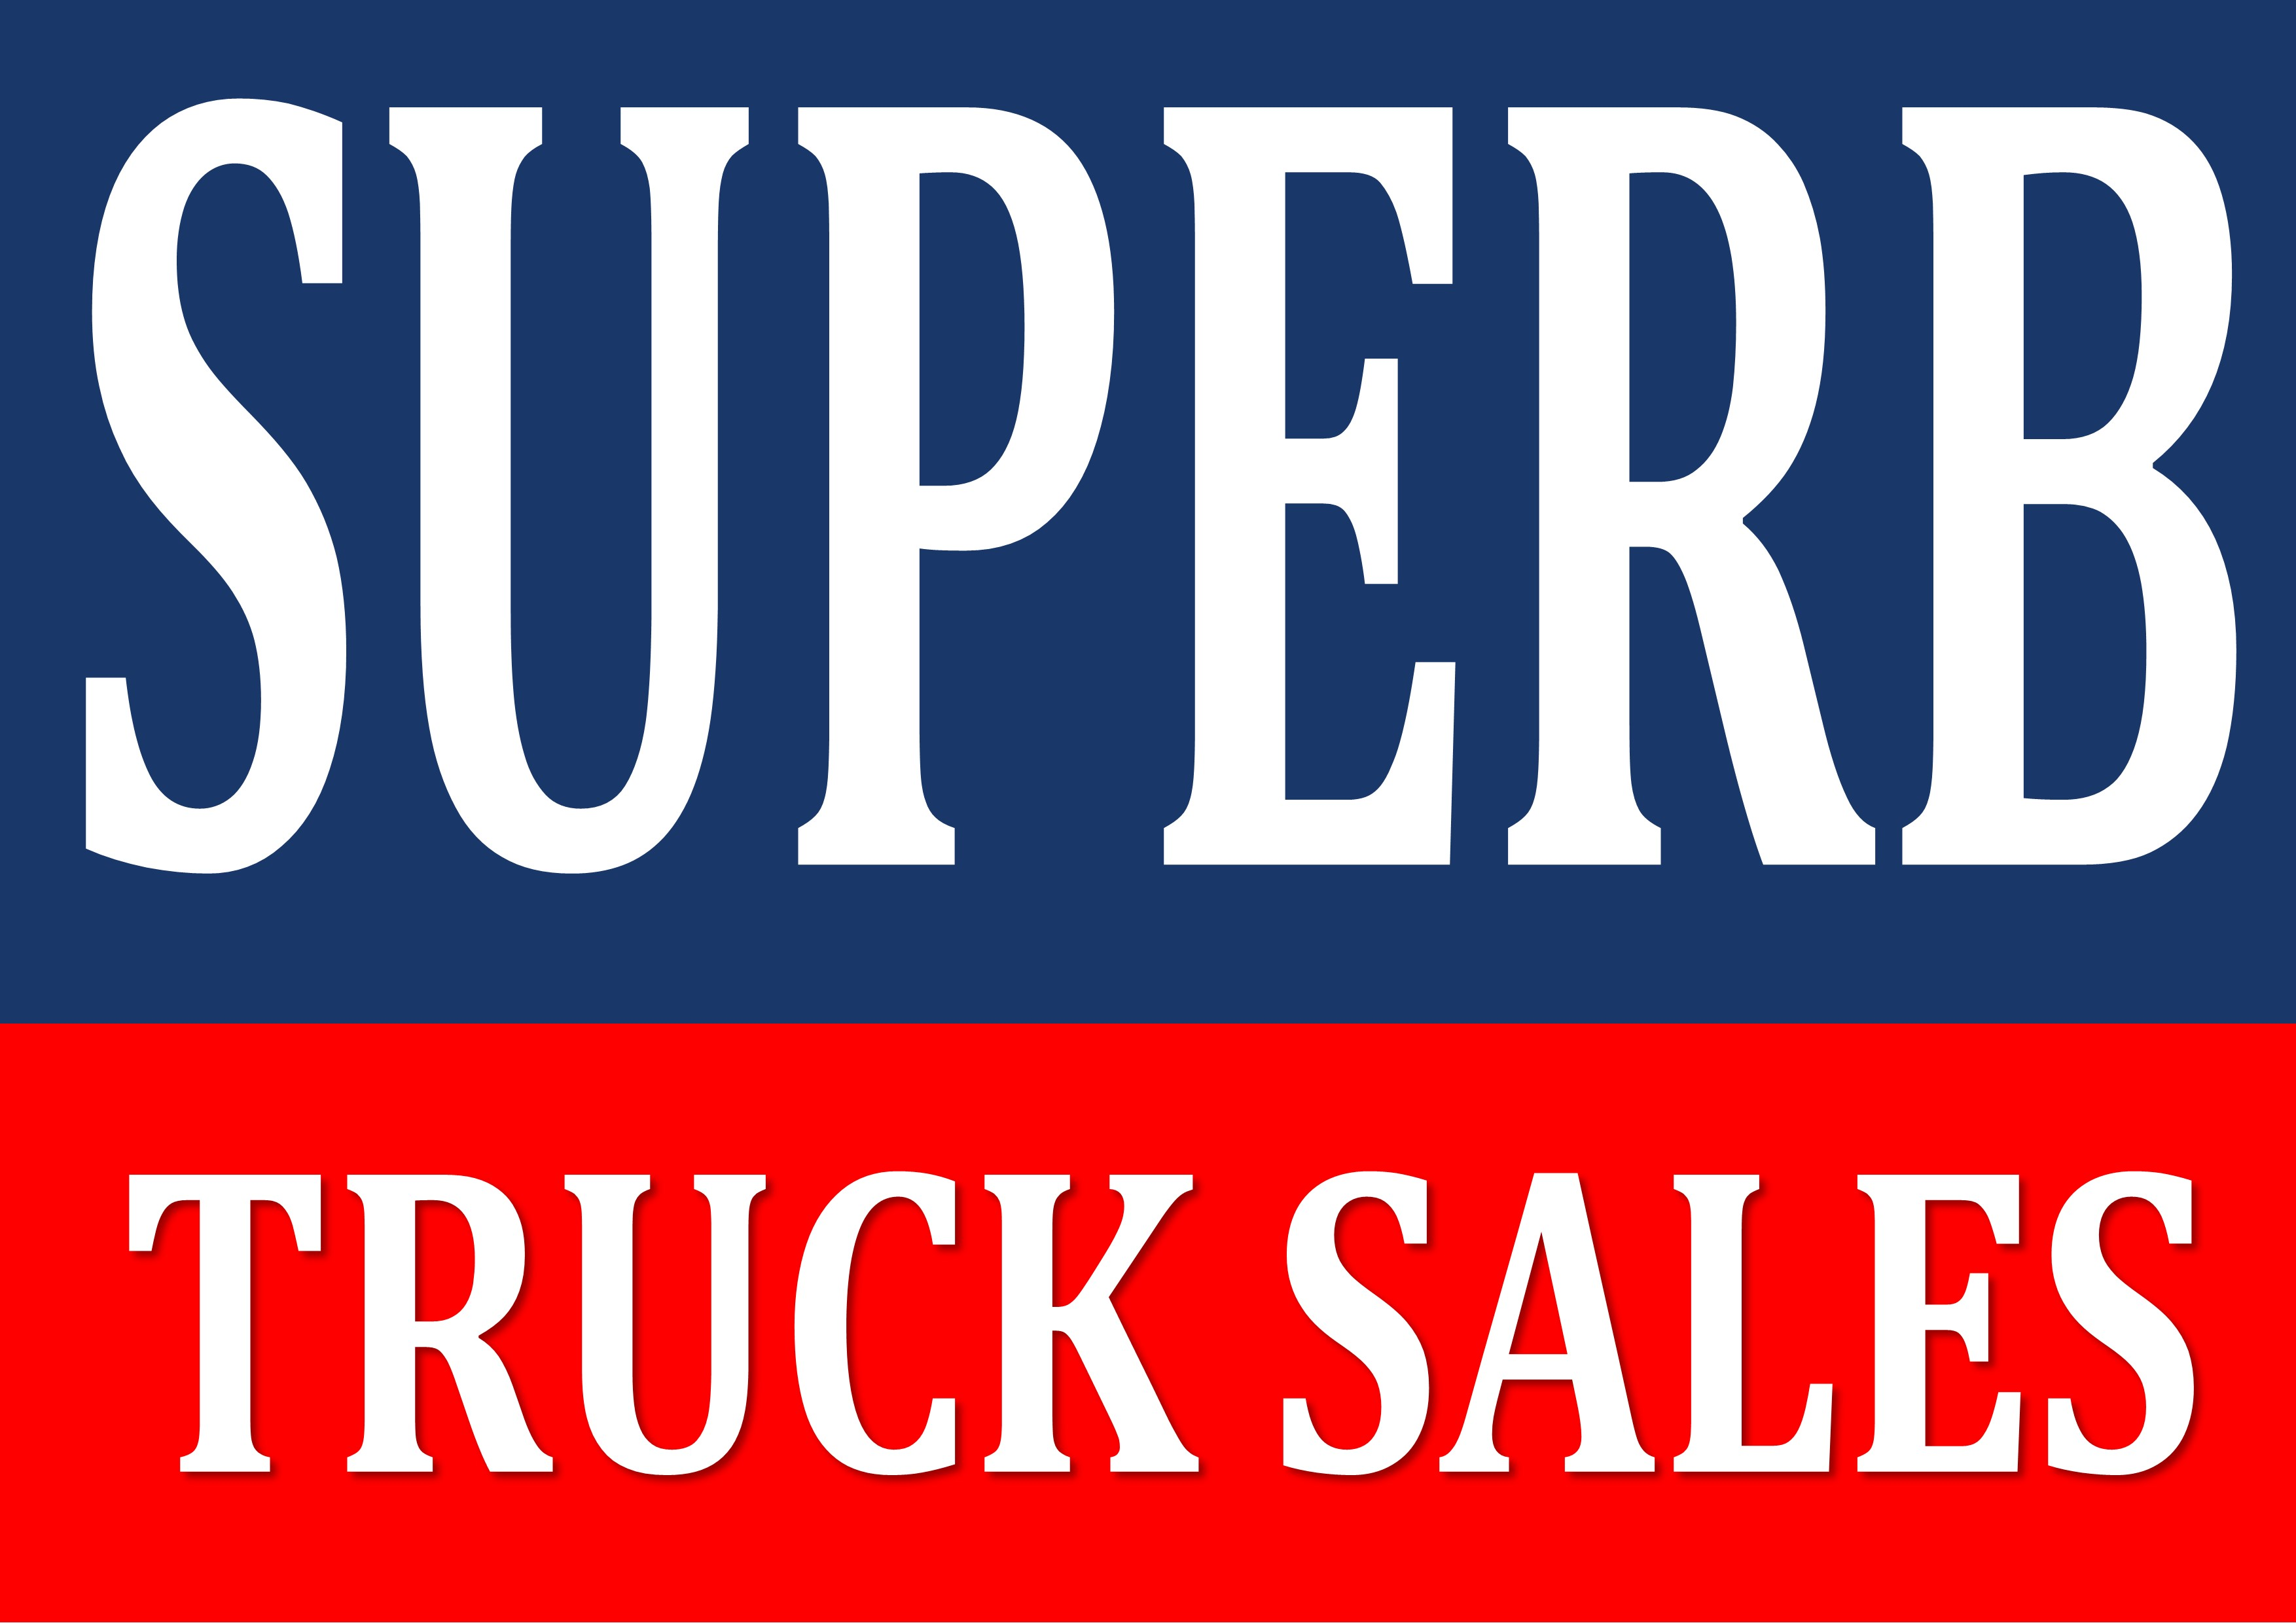 Find Superb Truck Sales's adverts listed on Junk Mail